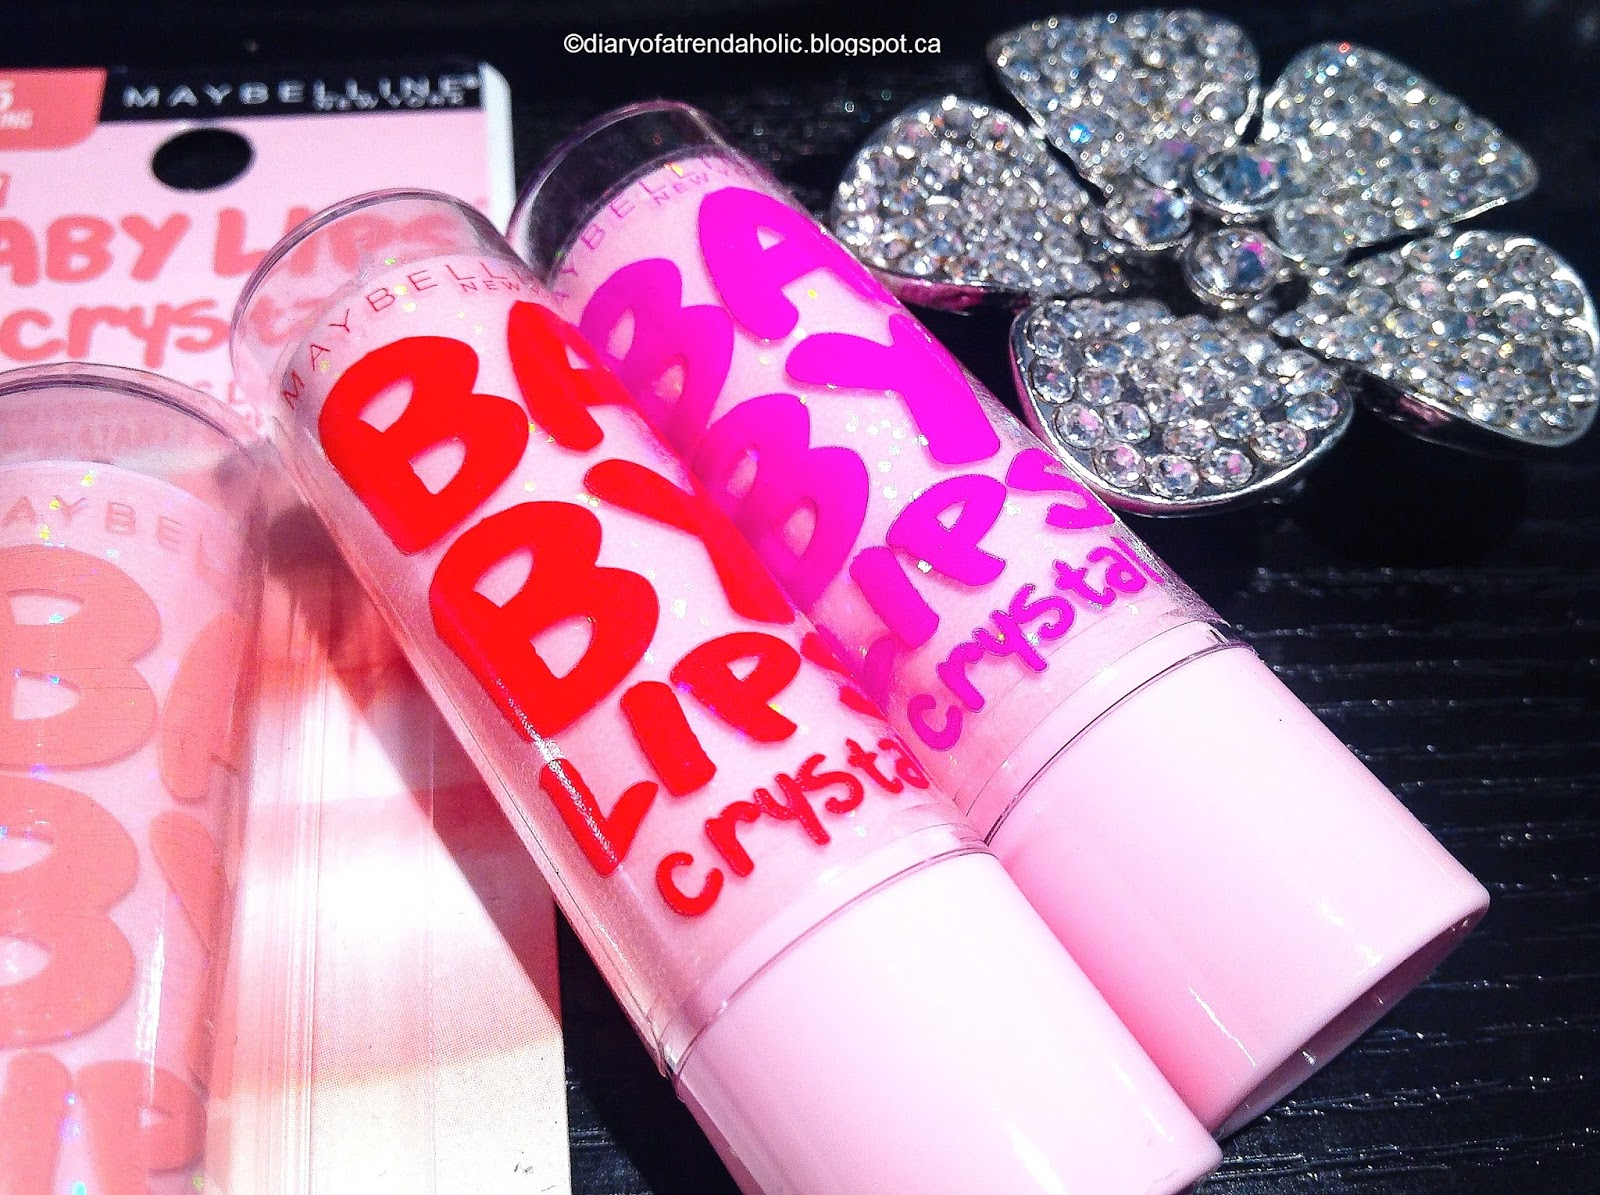 Diary of a Trendaholic : Maybelline Baby Lips Crystal Lip ...